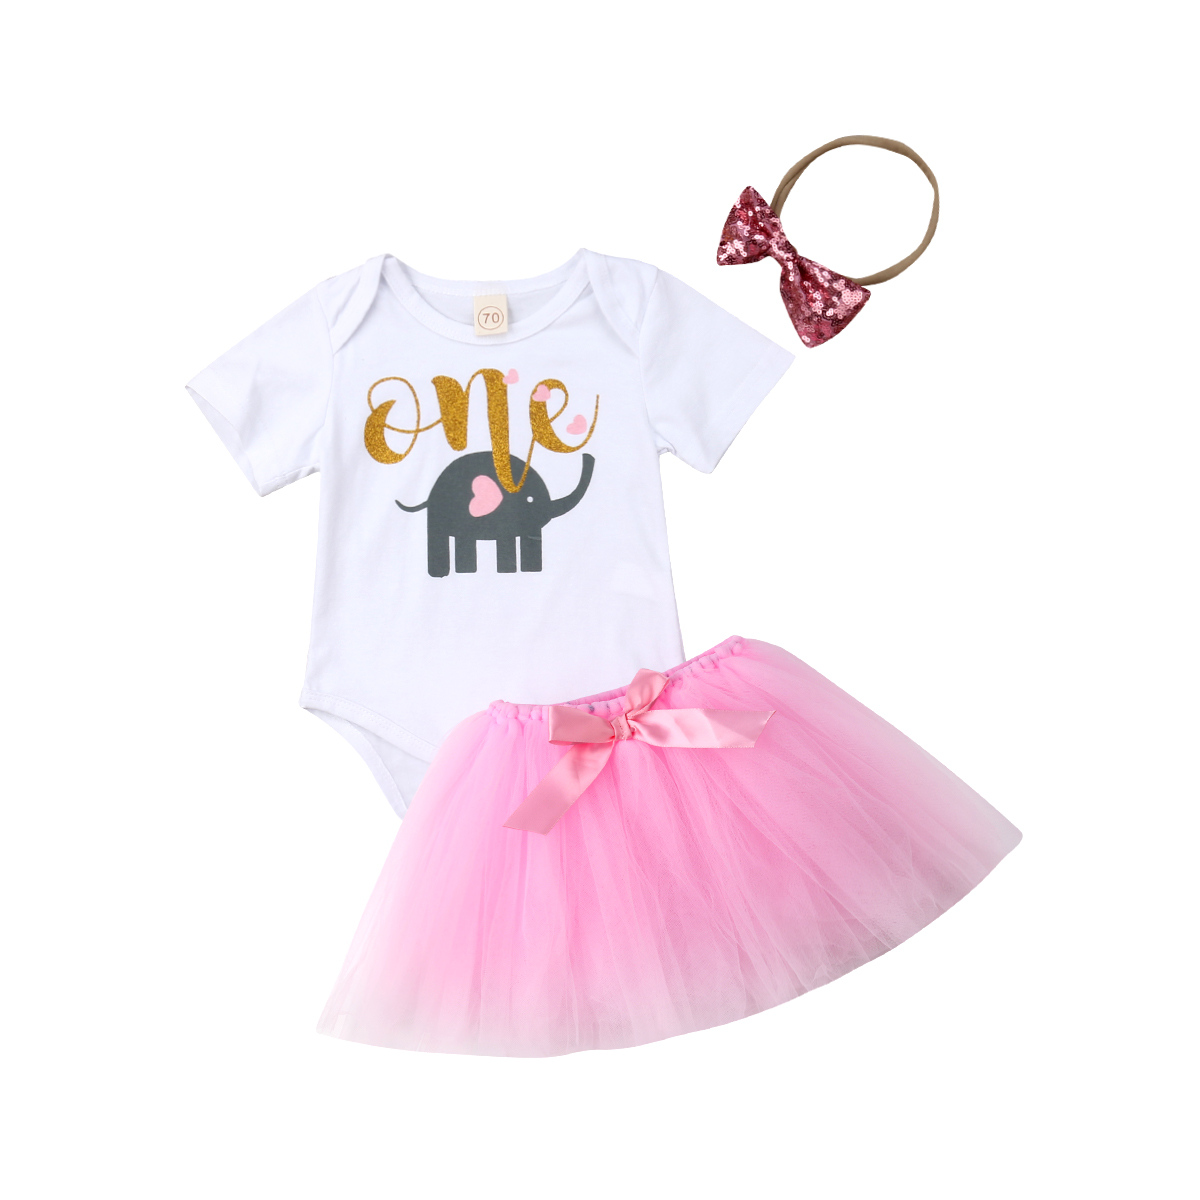 1st Birthday Outfit Baby Girls Romper Skirt Headband Cake Smash Party Clothes